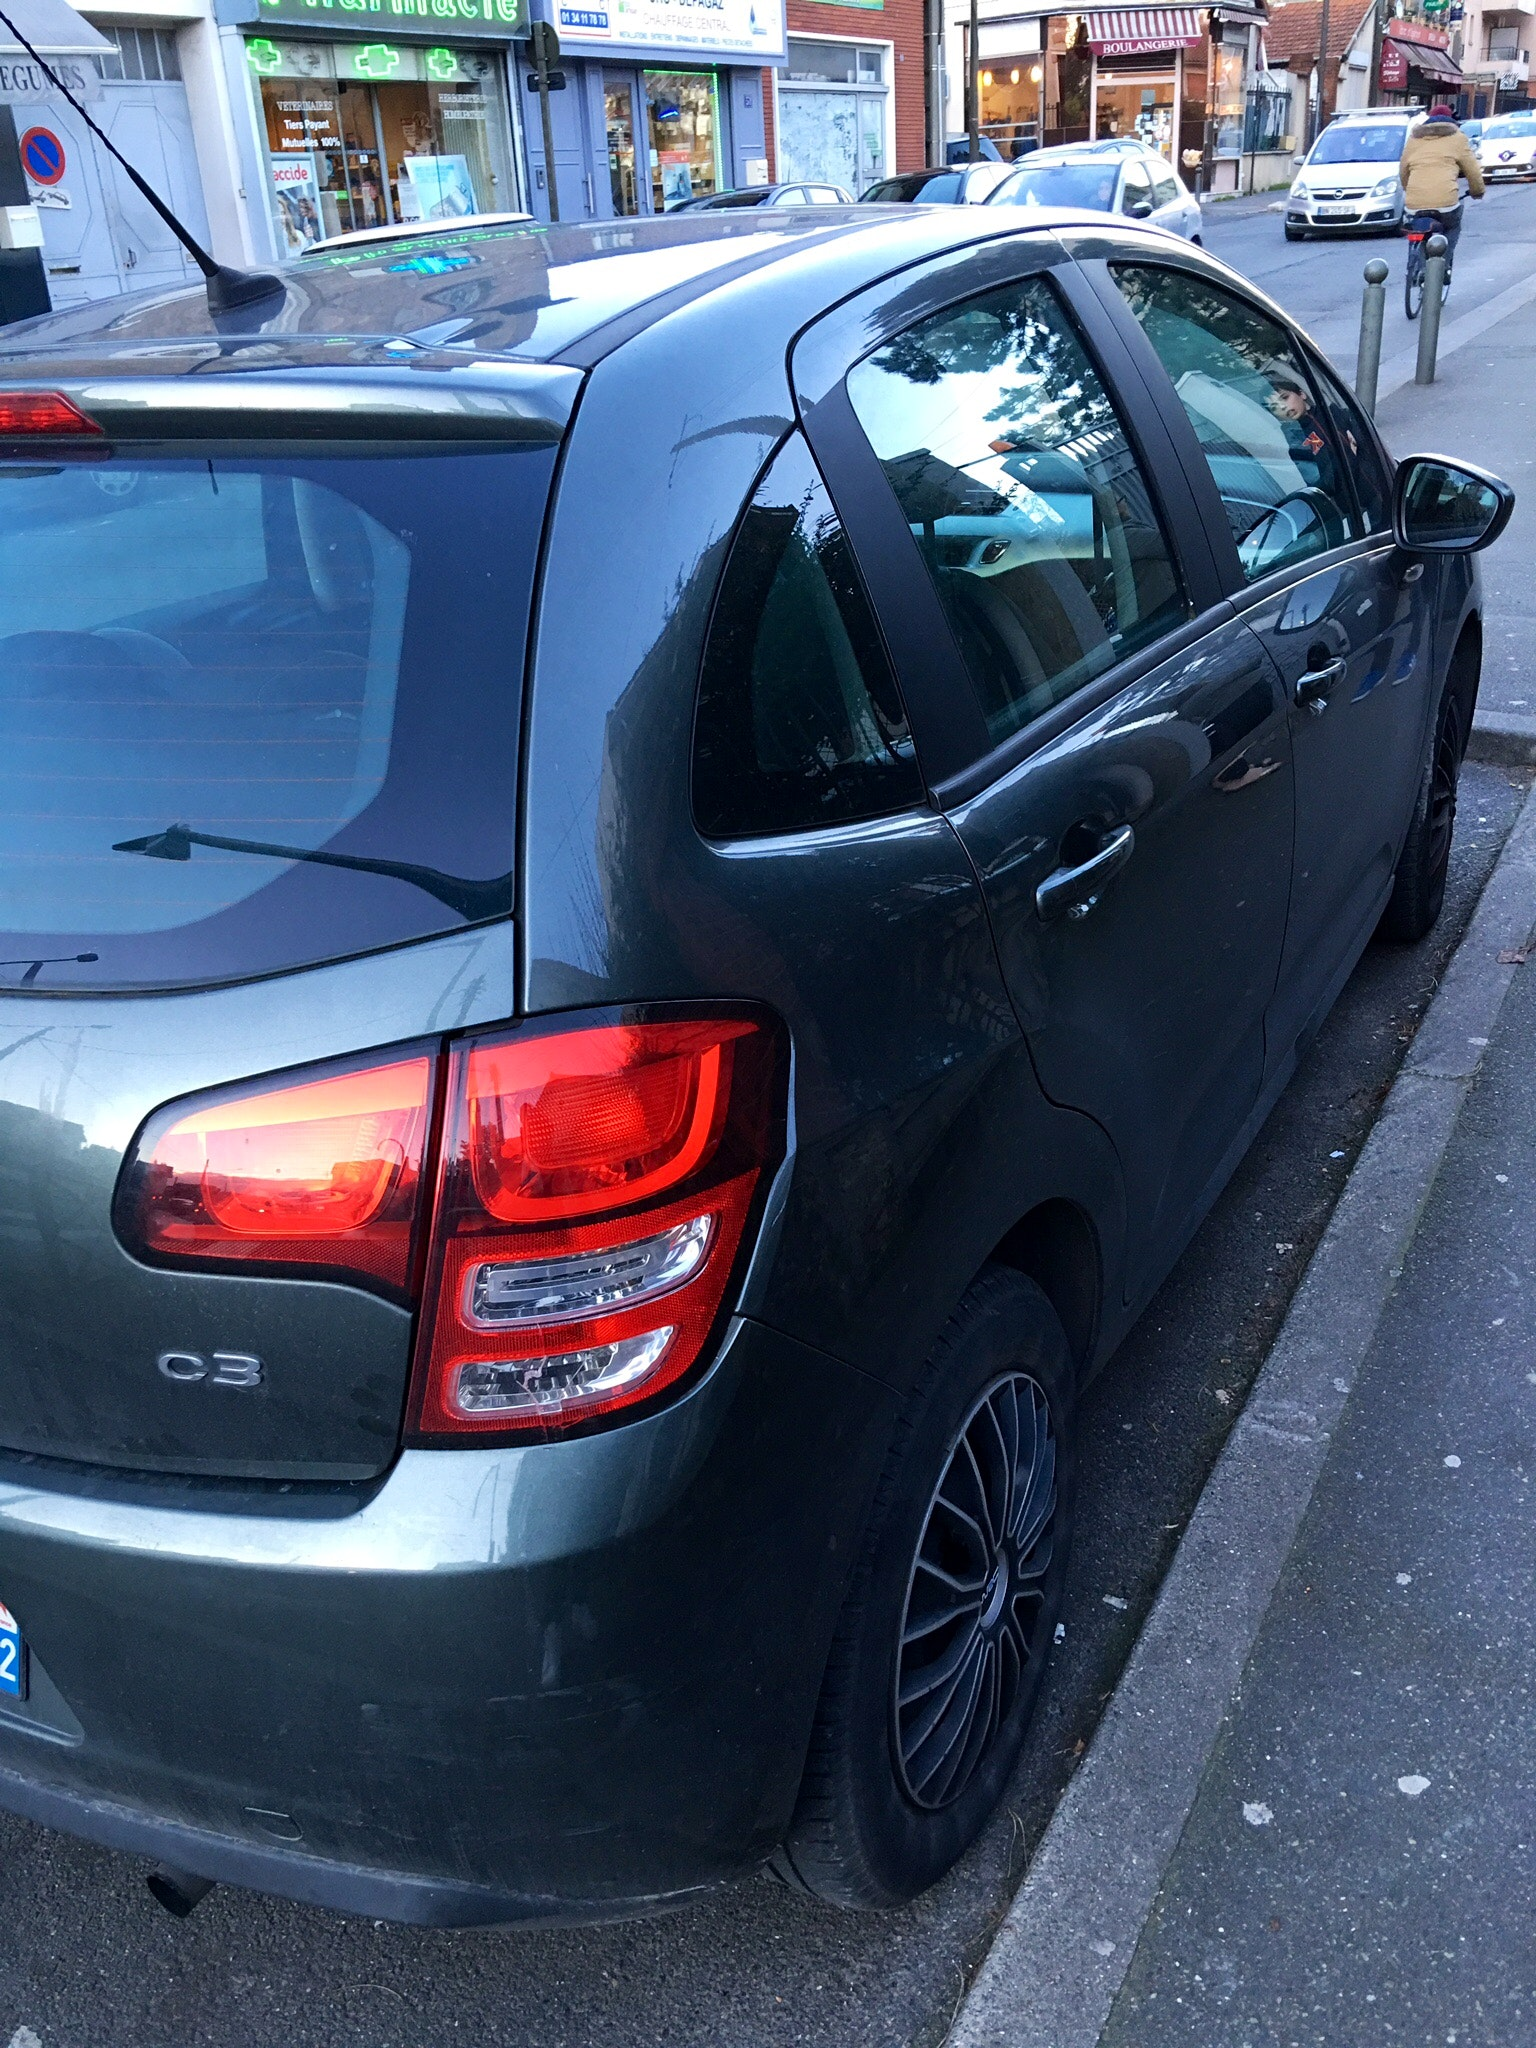 Citroen C3 1.1 hdi 70 cv Attraction, 2010, Diesel